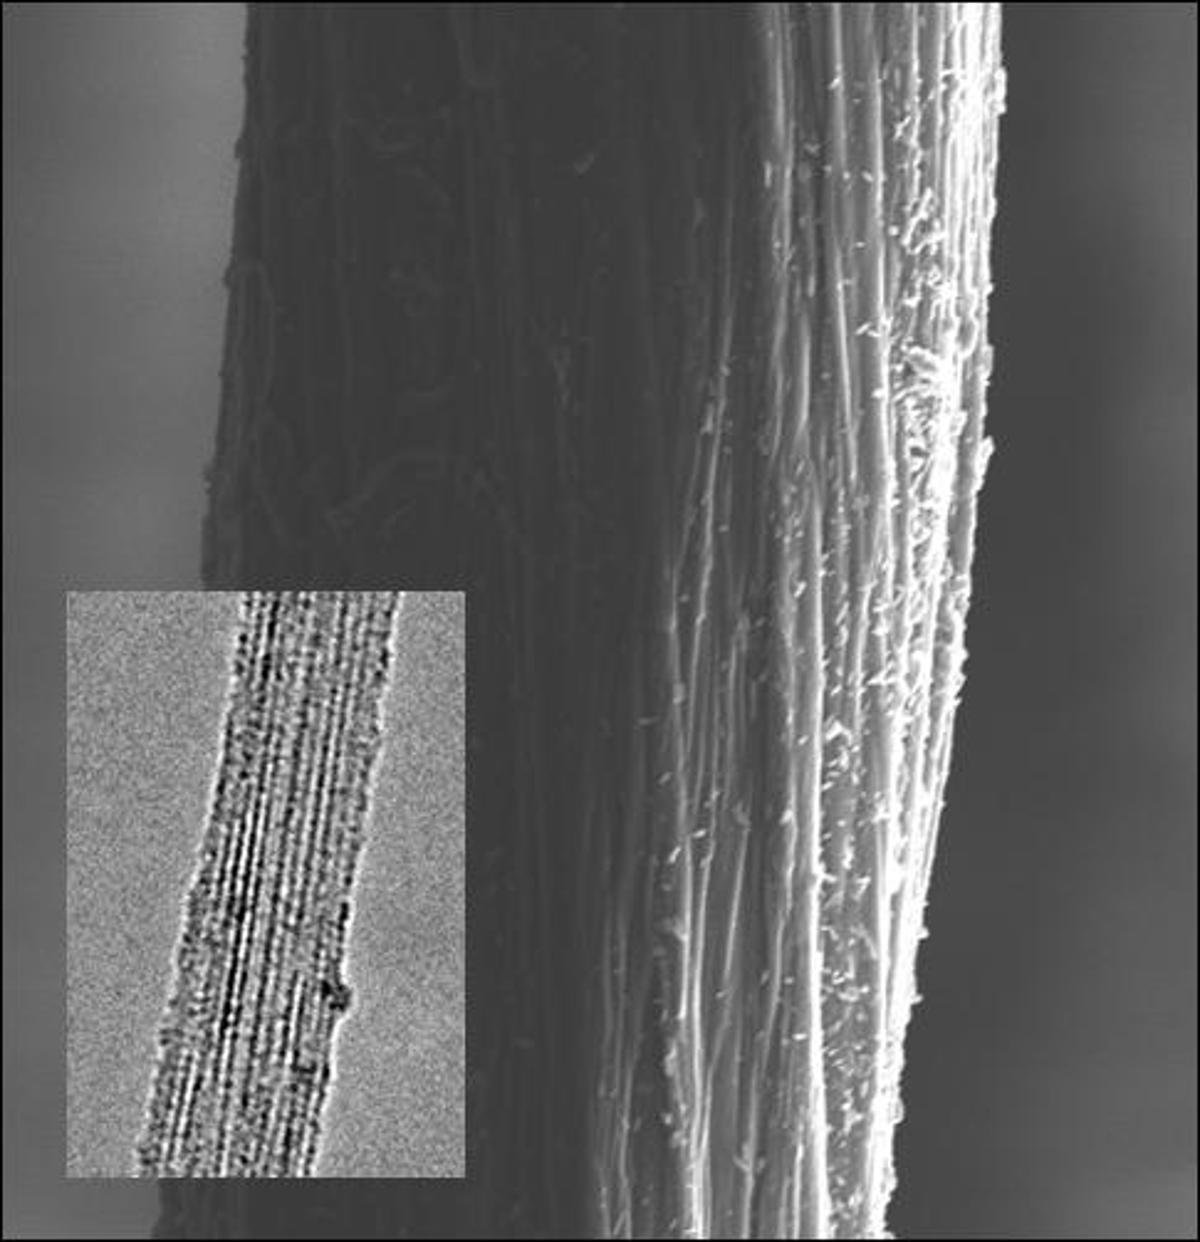 Scanning electron microscope (SEM) image of a DWNT-polymer fiber which exhibits high strength and toughness. The inset shows a transmission electron microscope (TEM) image of a well ordered bundle of DWNTs which are the constituents that make up the macroscopic fibers (Image: Northwestern University)